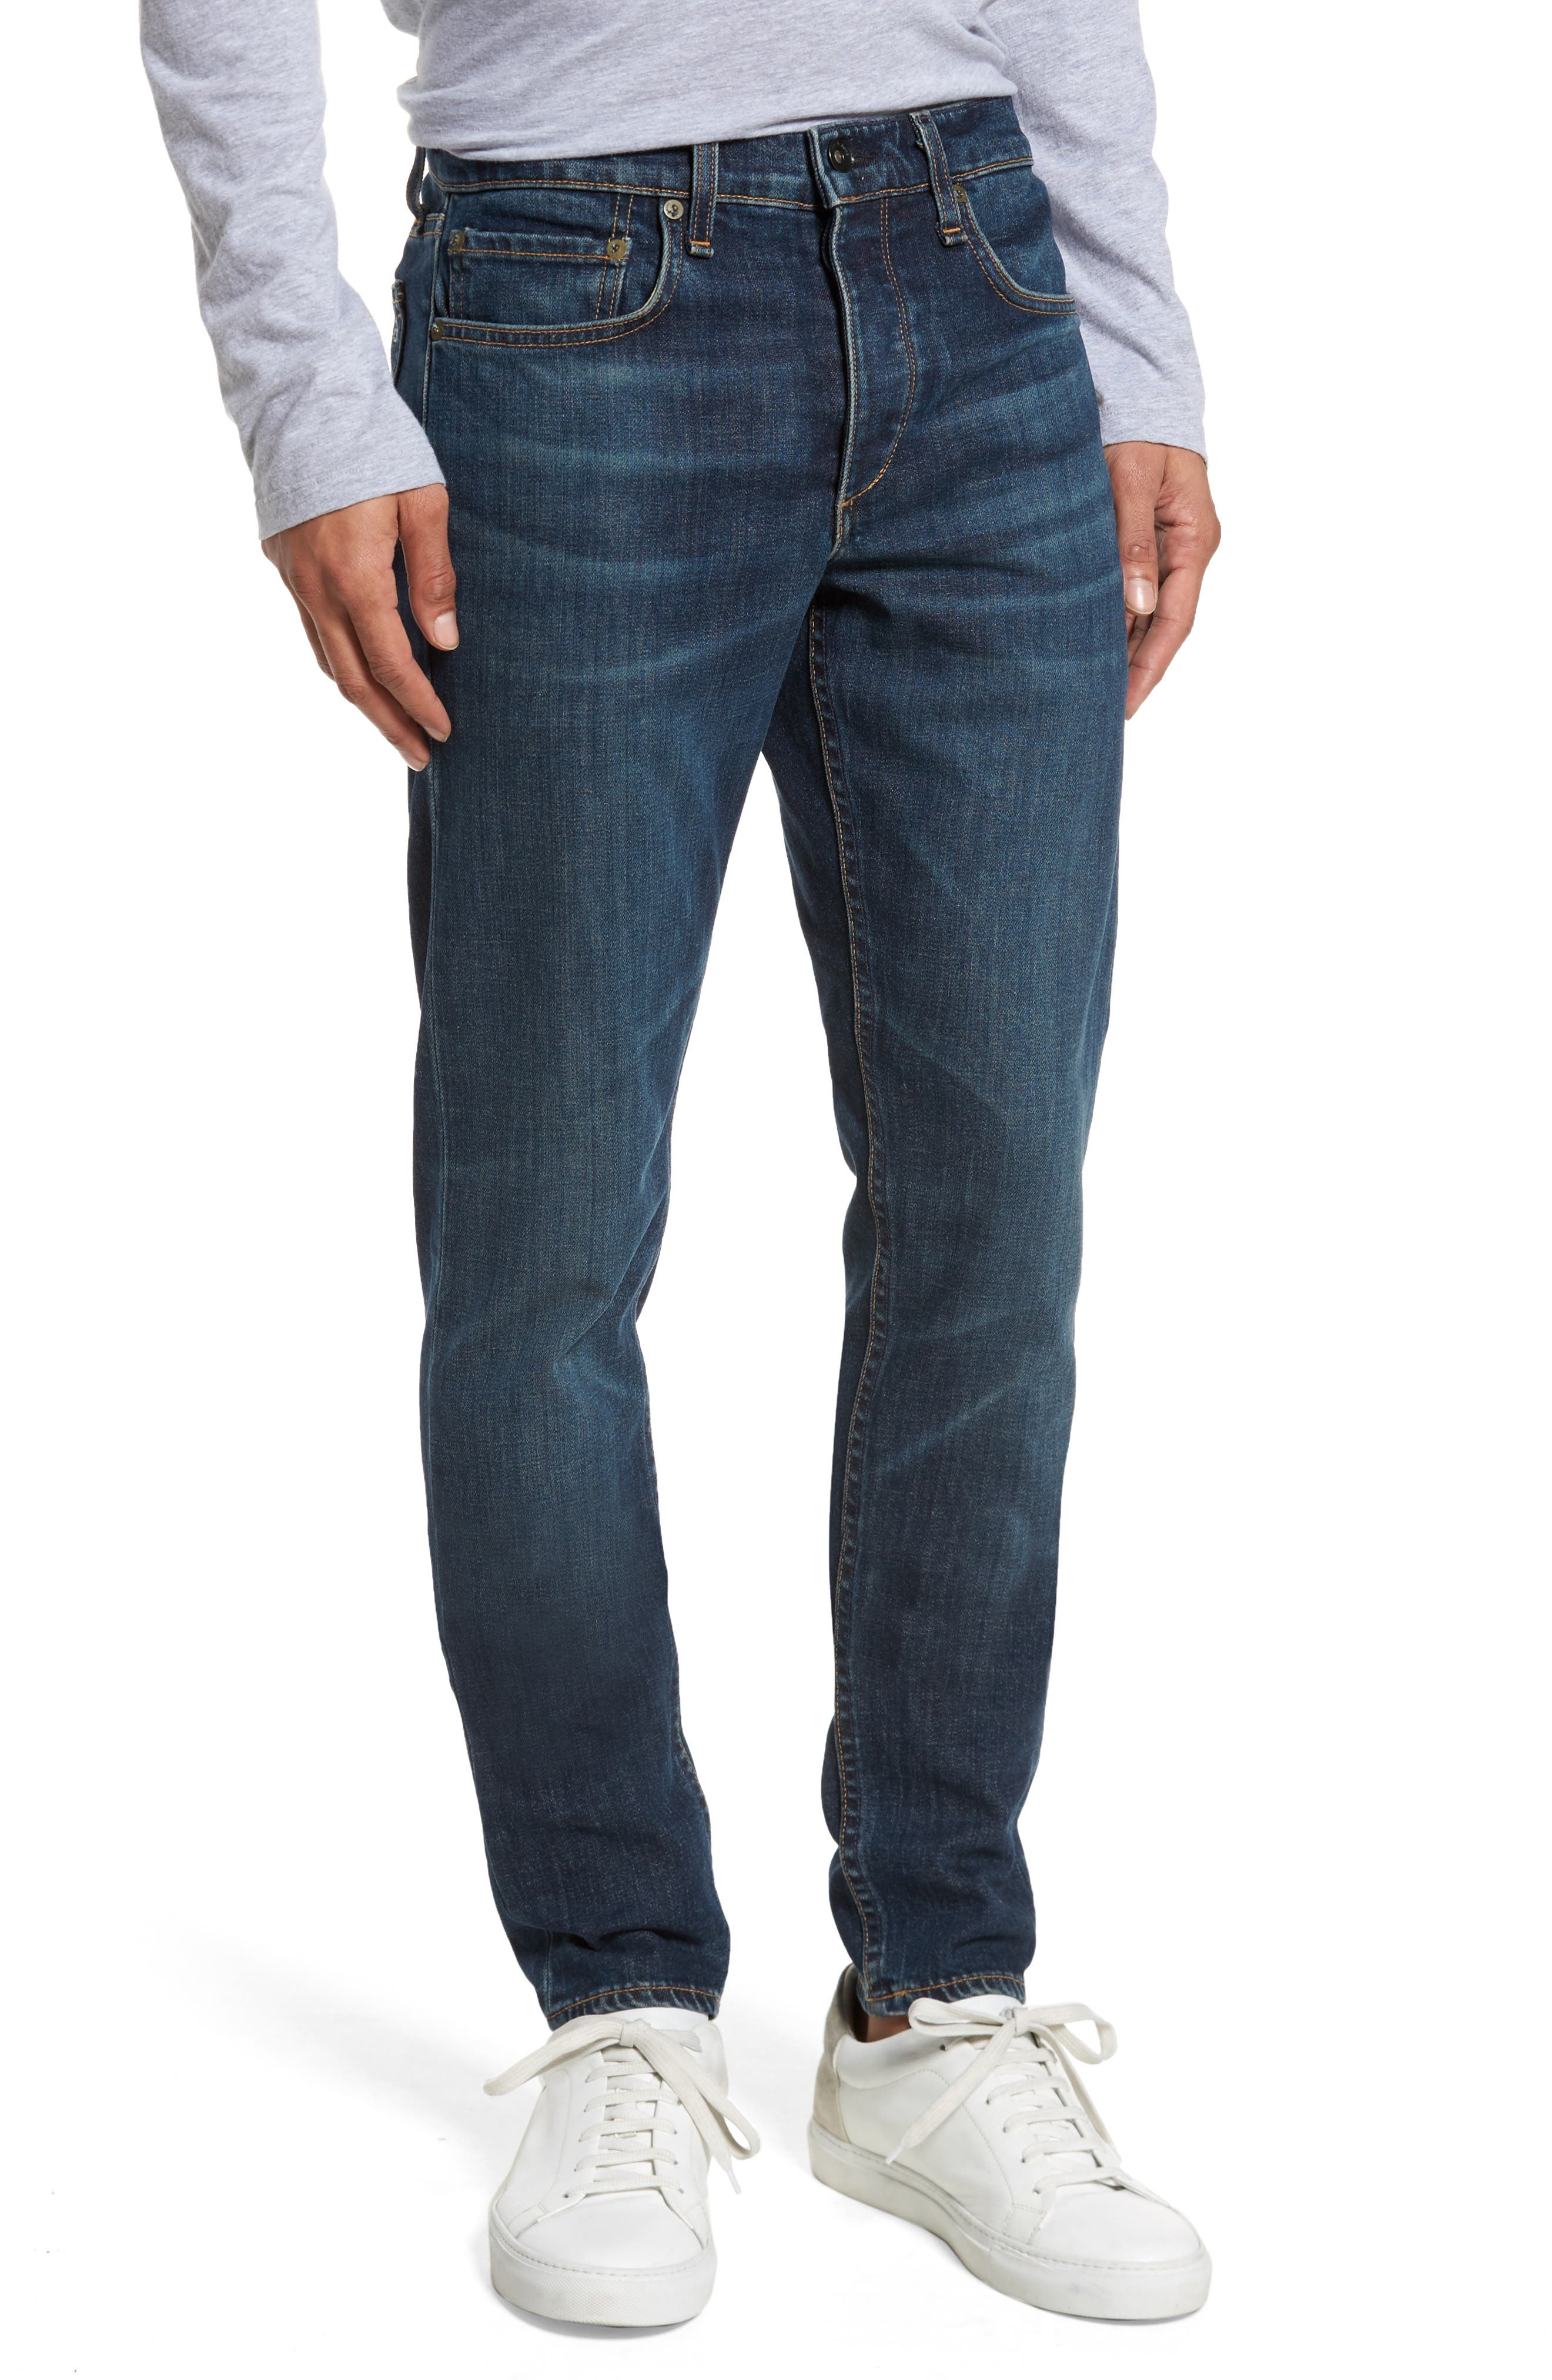 Fit 1 Skinny Fit Jeans,                             Main thumbnail 1, color,                             LINDEN